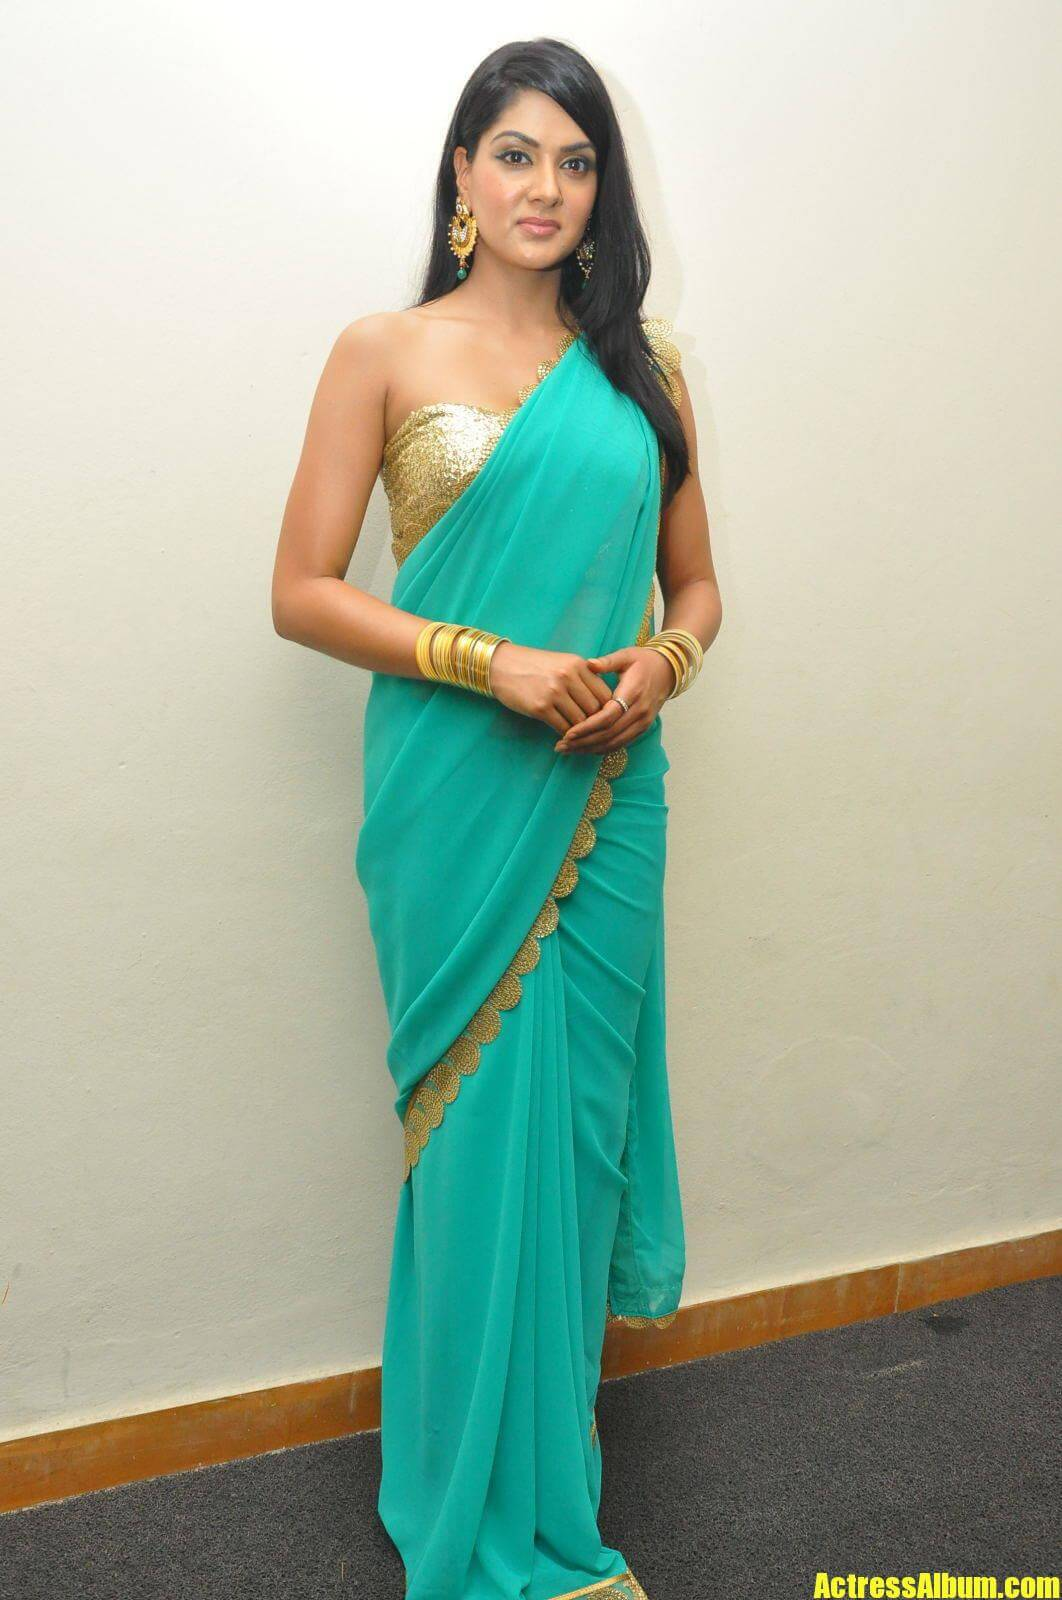 Sakshi Chaudhary In Blue Saree With Backless Blouse -4542